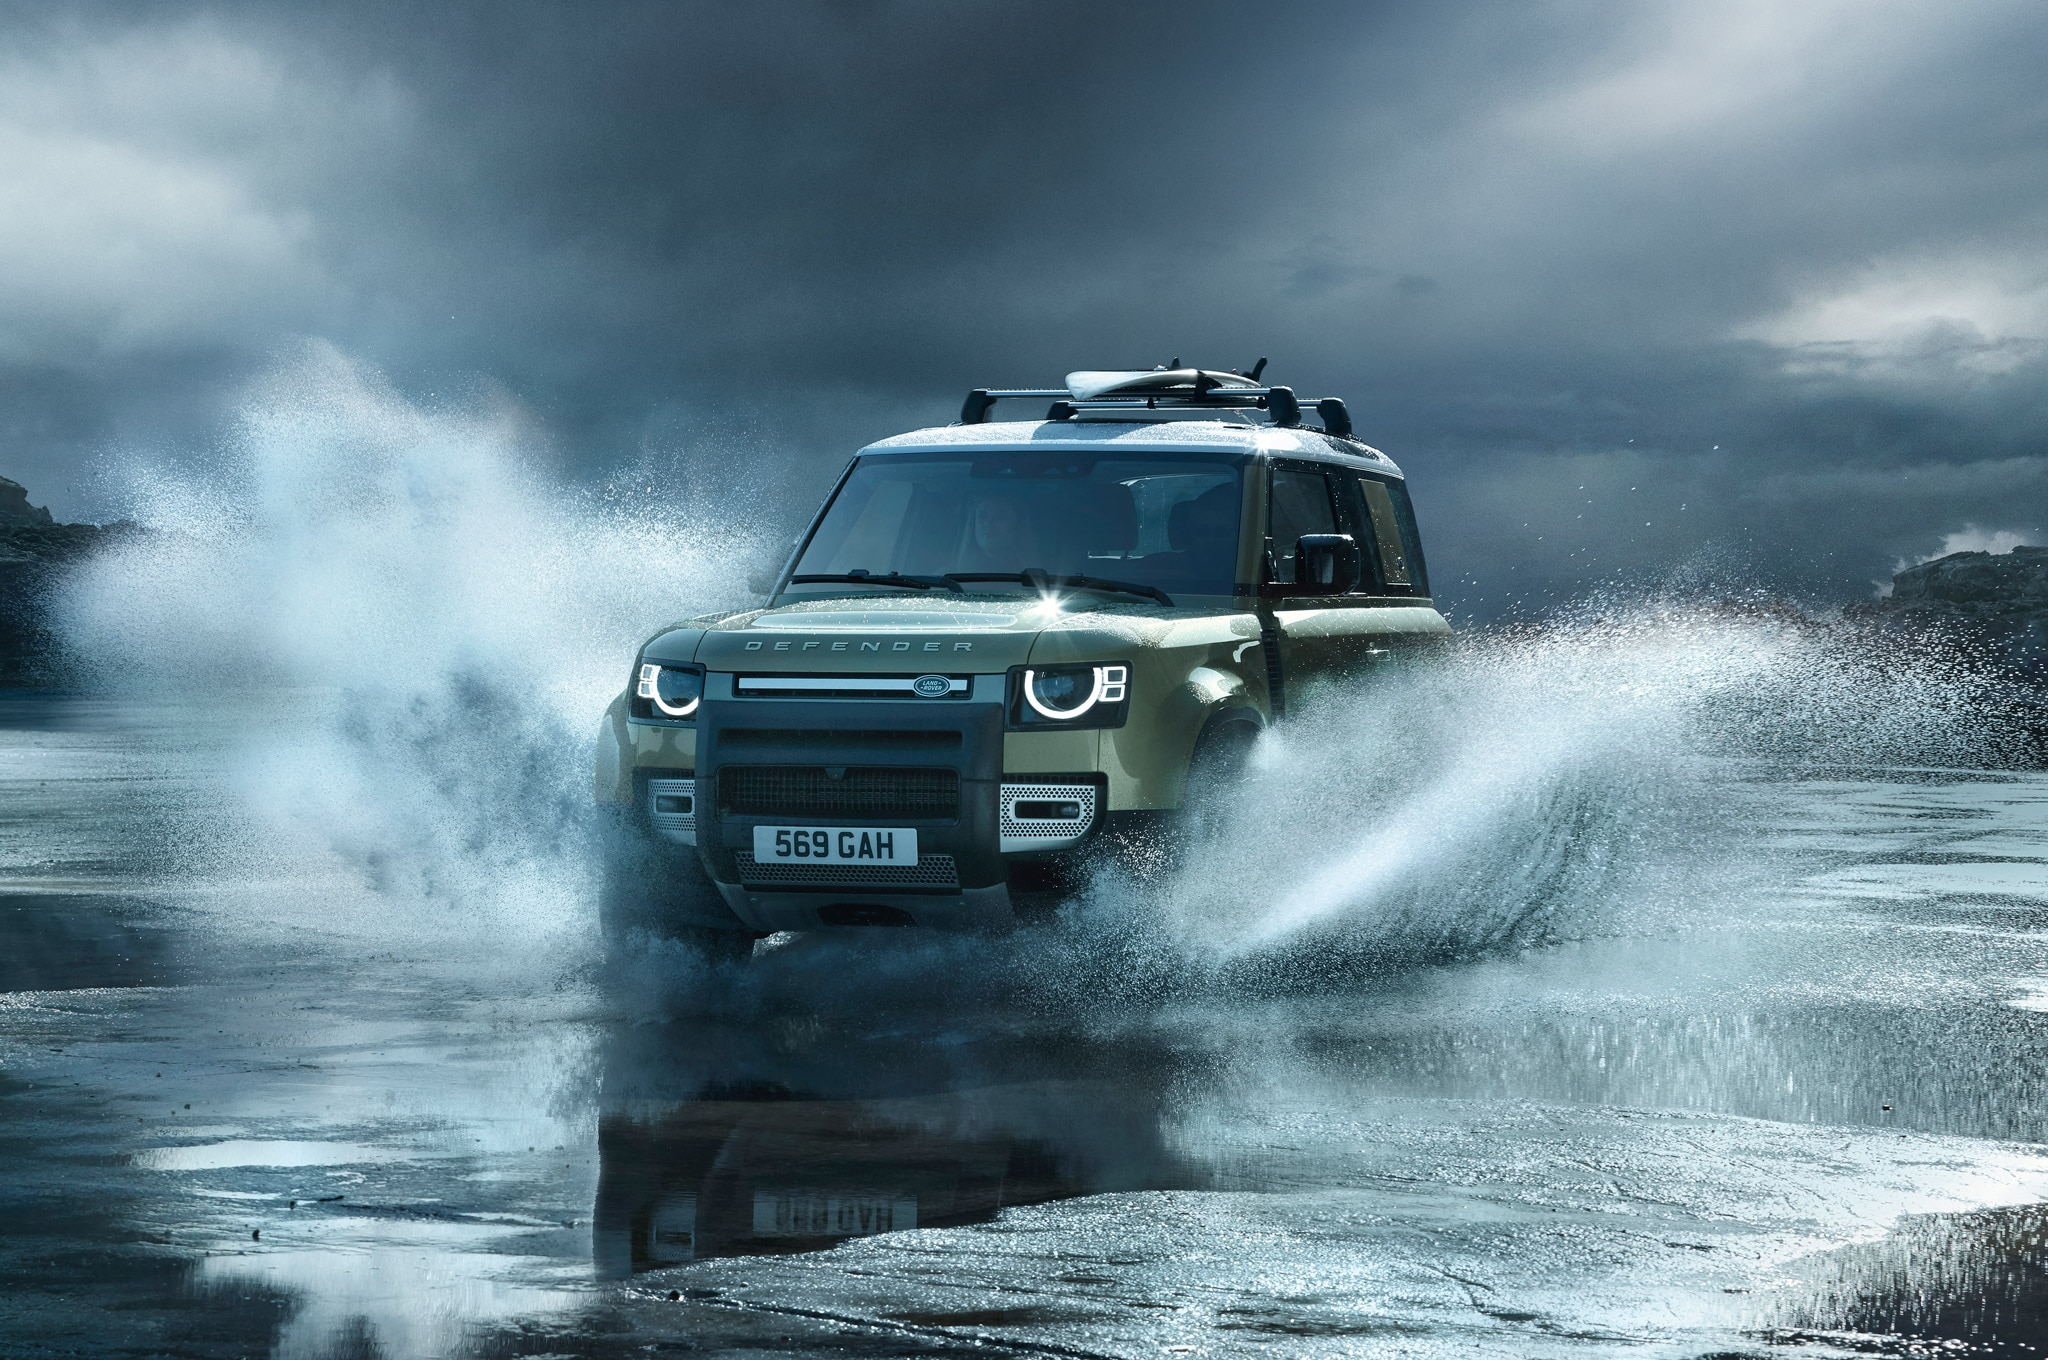 2020 land rover defender 90 off road water 01